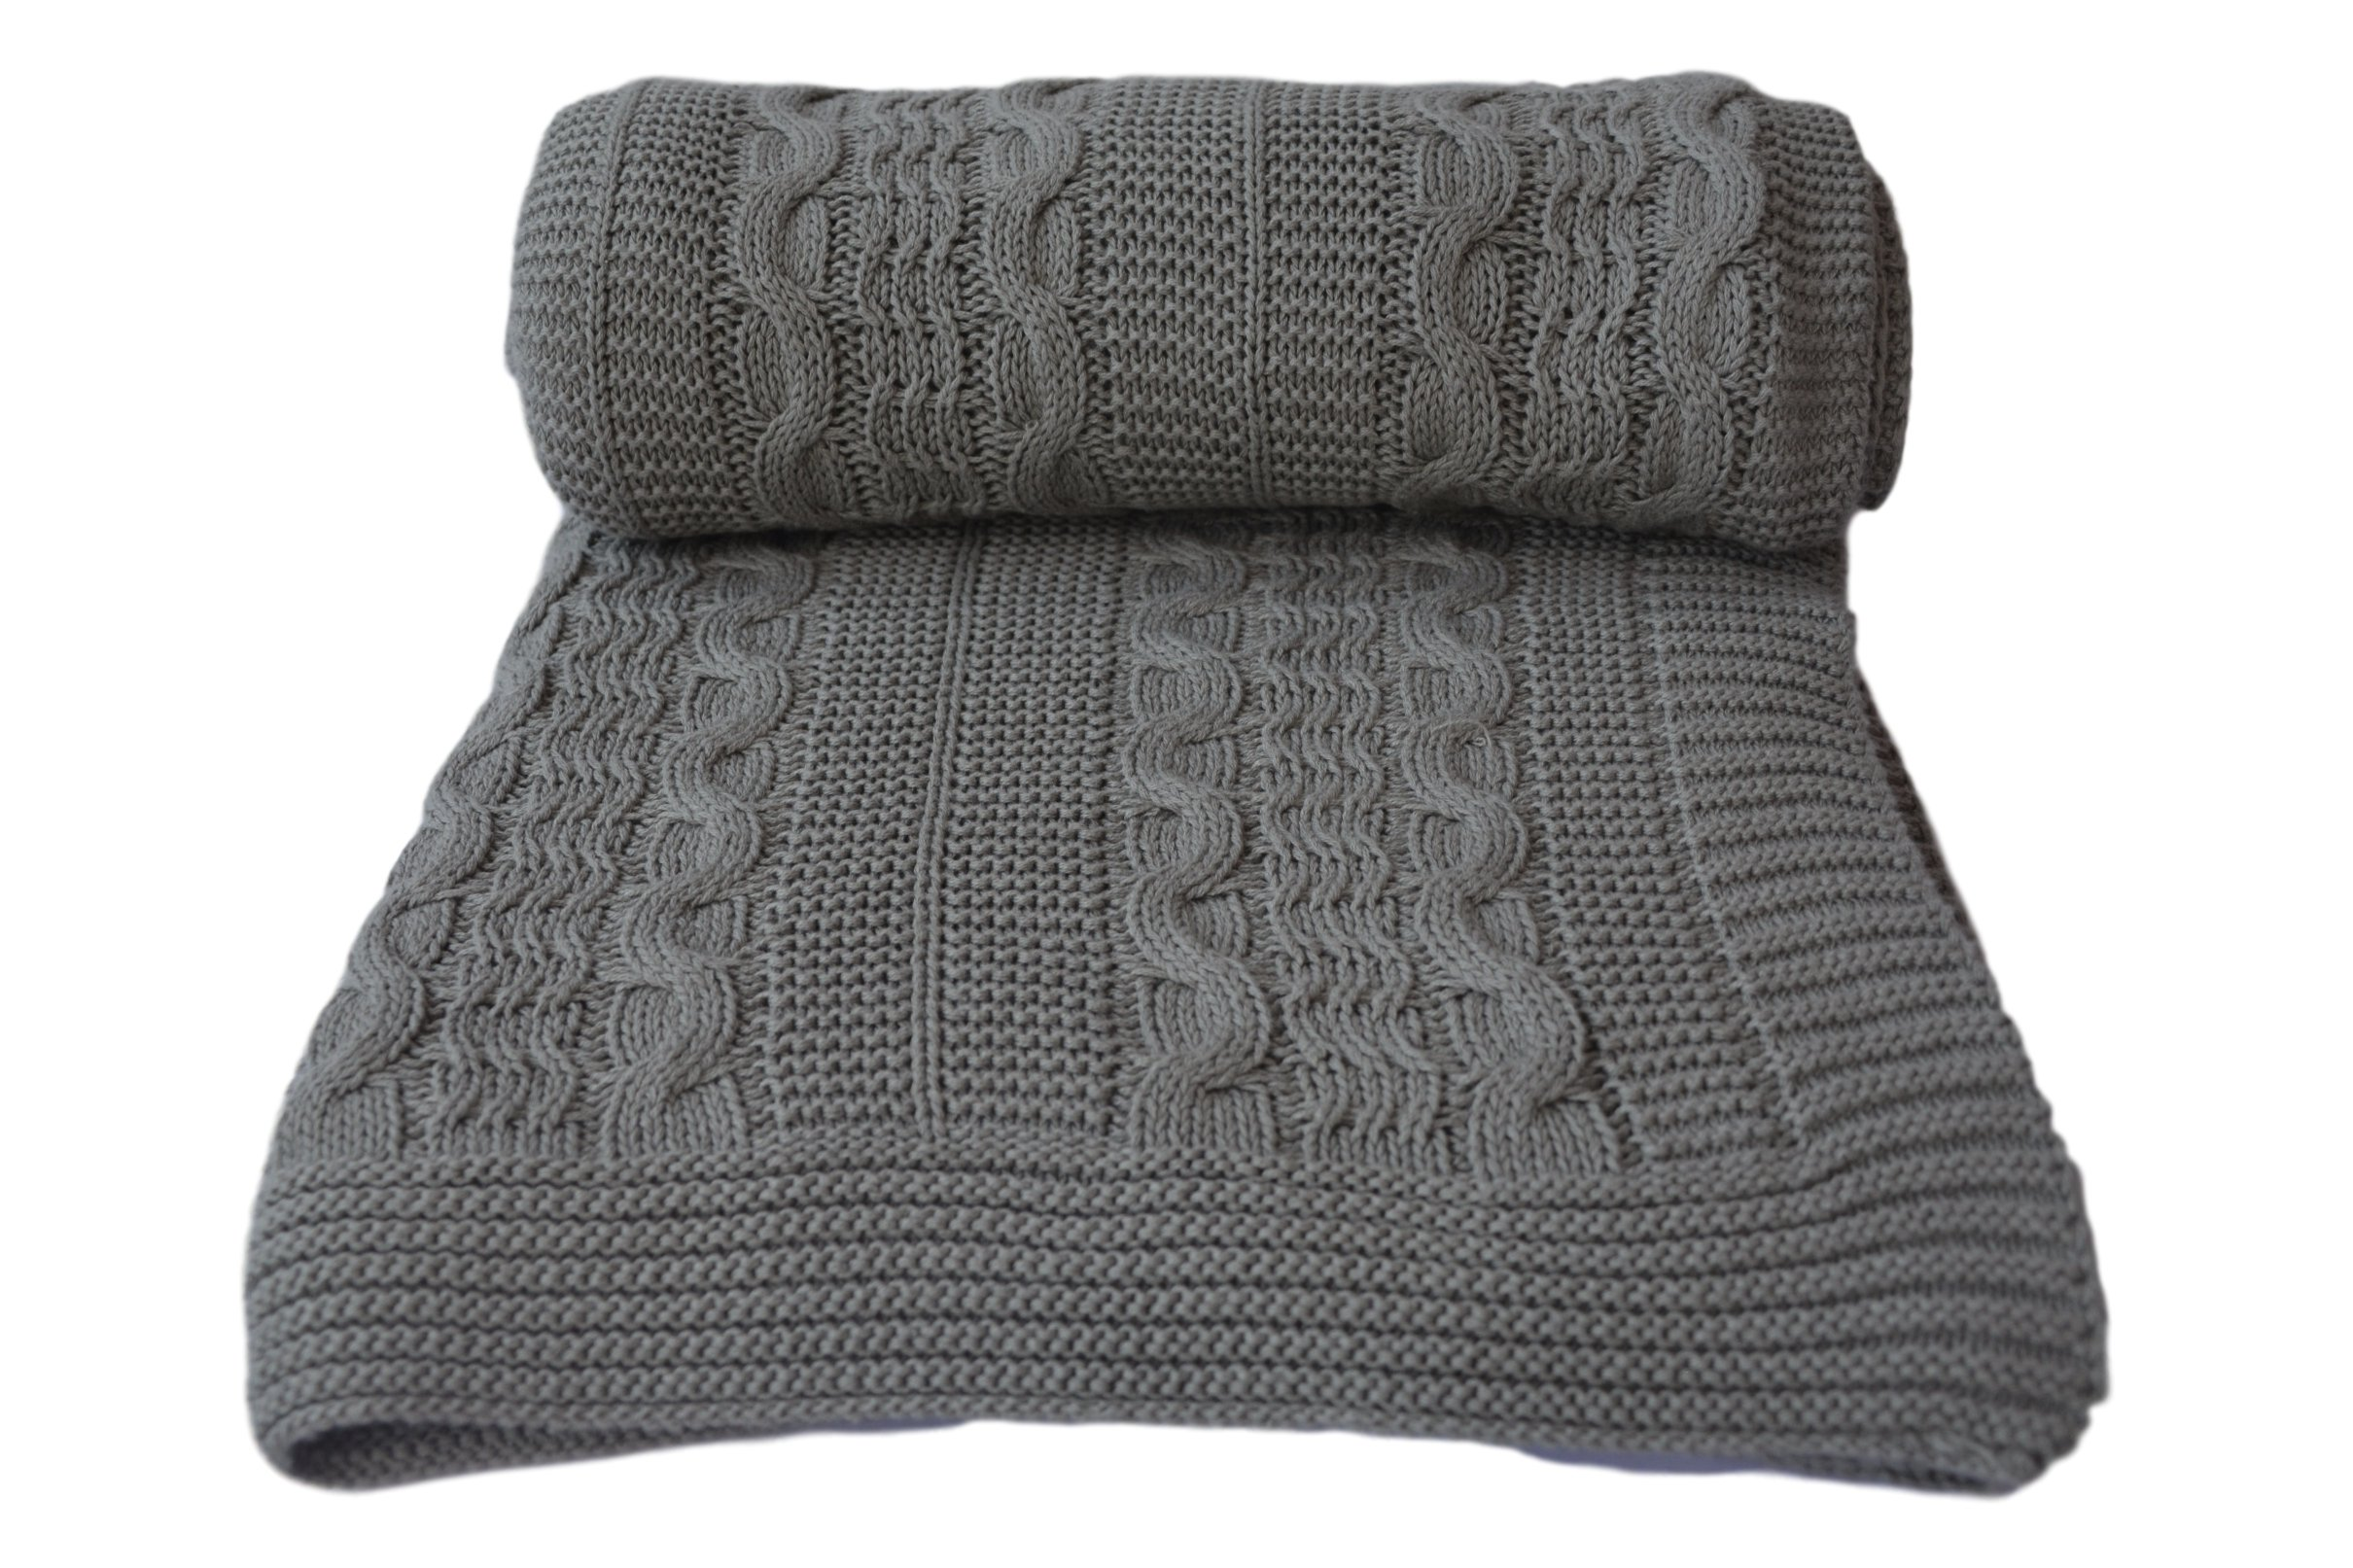 Aztocratic Delight Throw Collection: Cotton Throw Blanket, Premium Chevron Pattern, Dual Color Throw Blanket for Sofa/Bed or Couch, Soft and Cozy Feel, Ideal for All Year Round Use. (Light Grey)